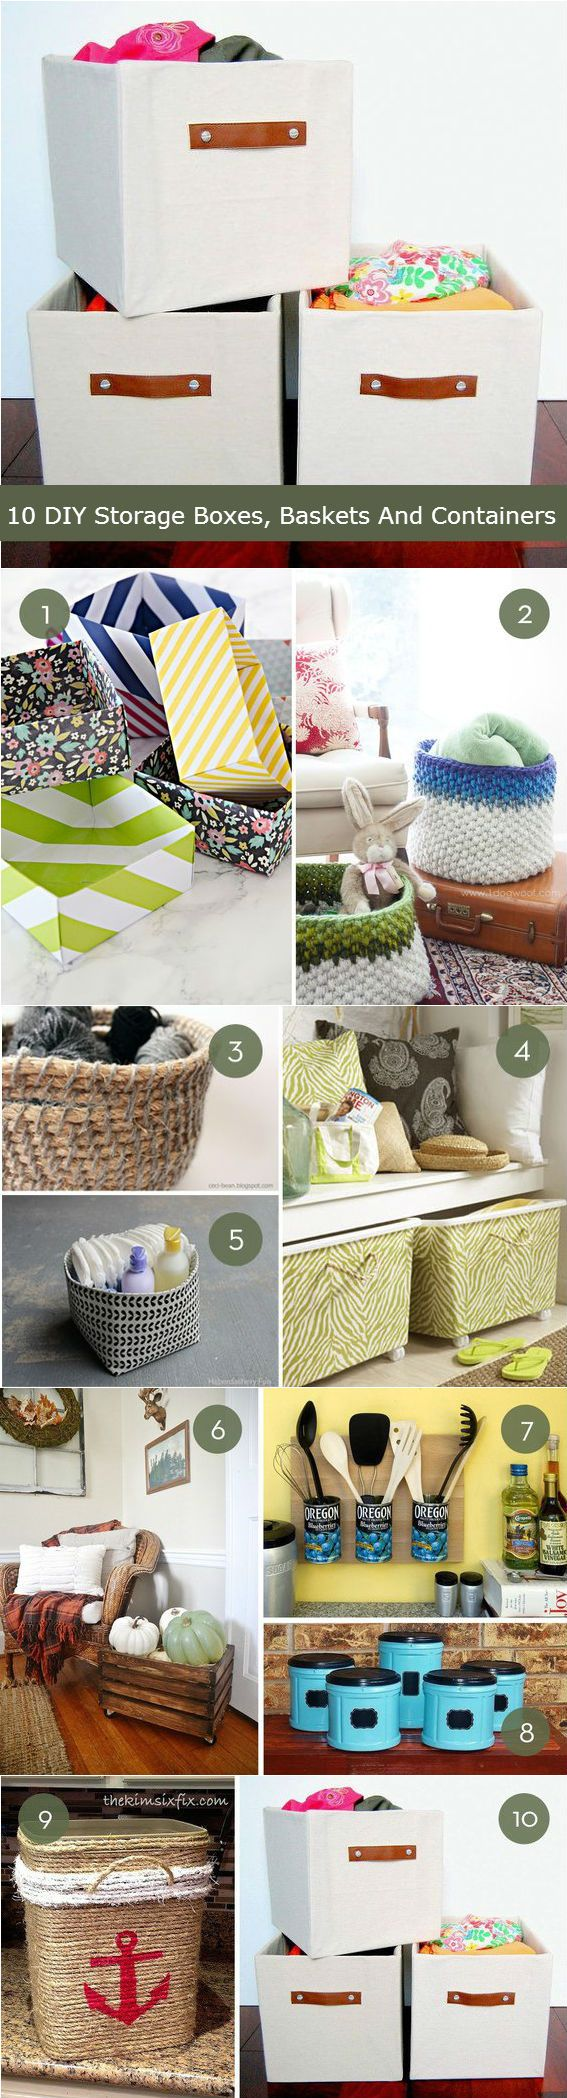 10 DIY Storage Boxes, Baskets And Containers